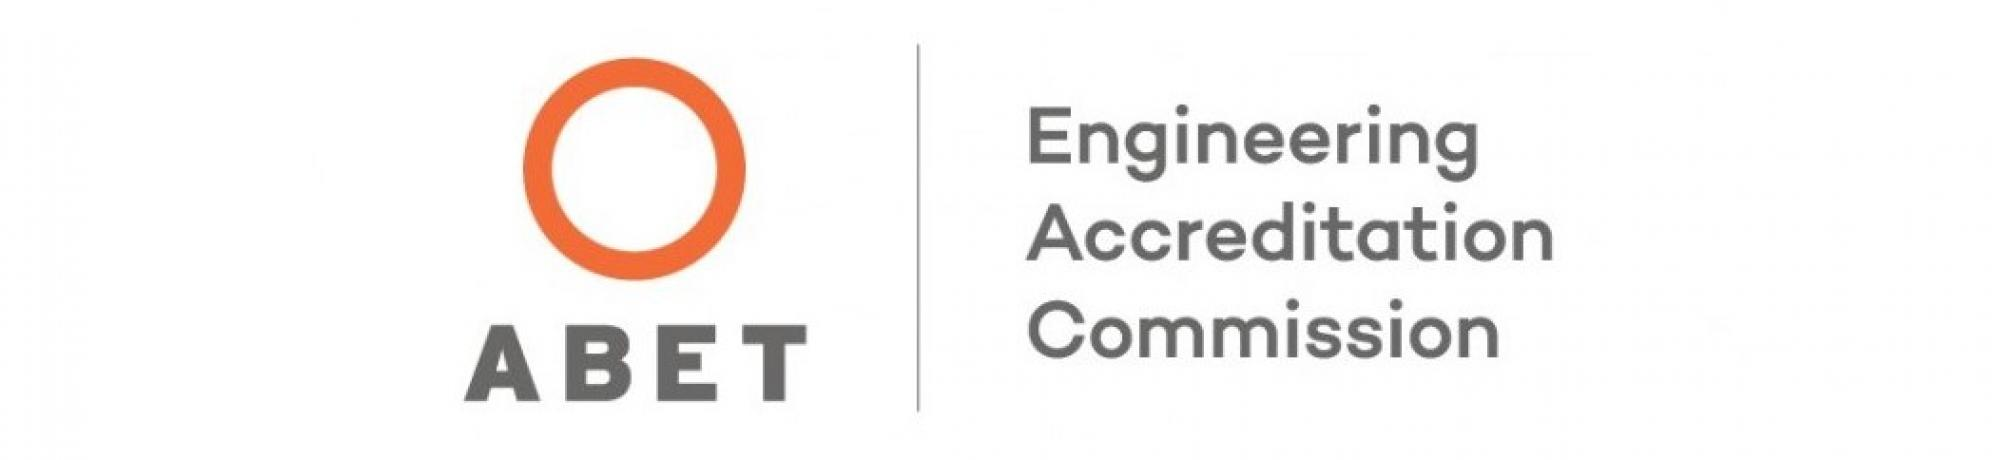 uc davis materials science engineering abet accreditation